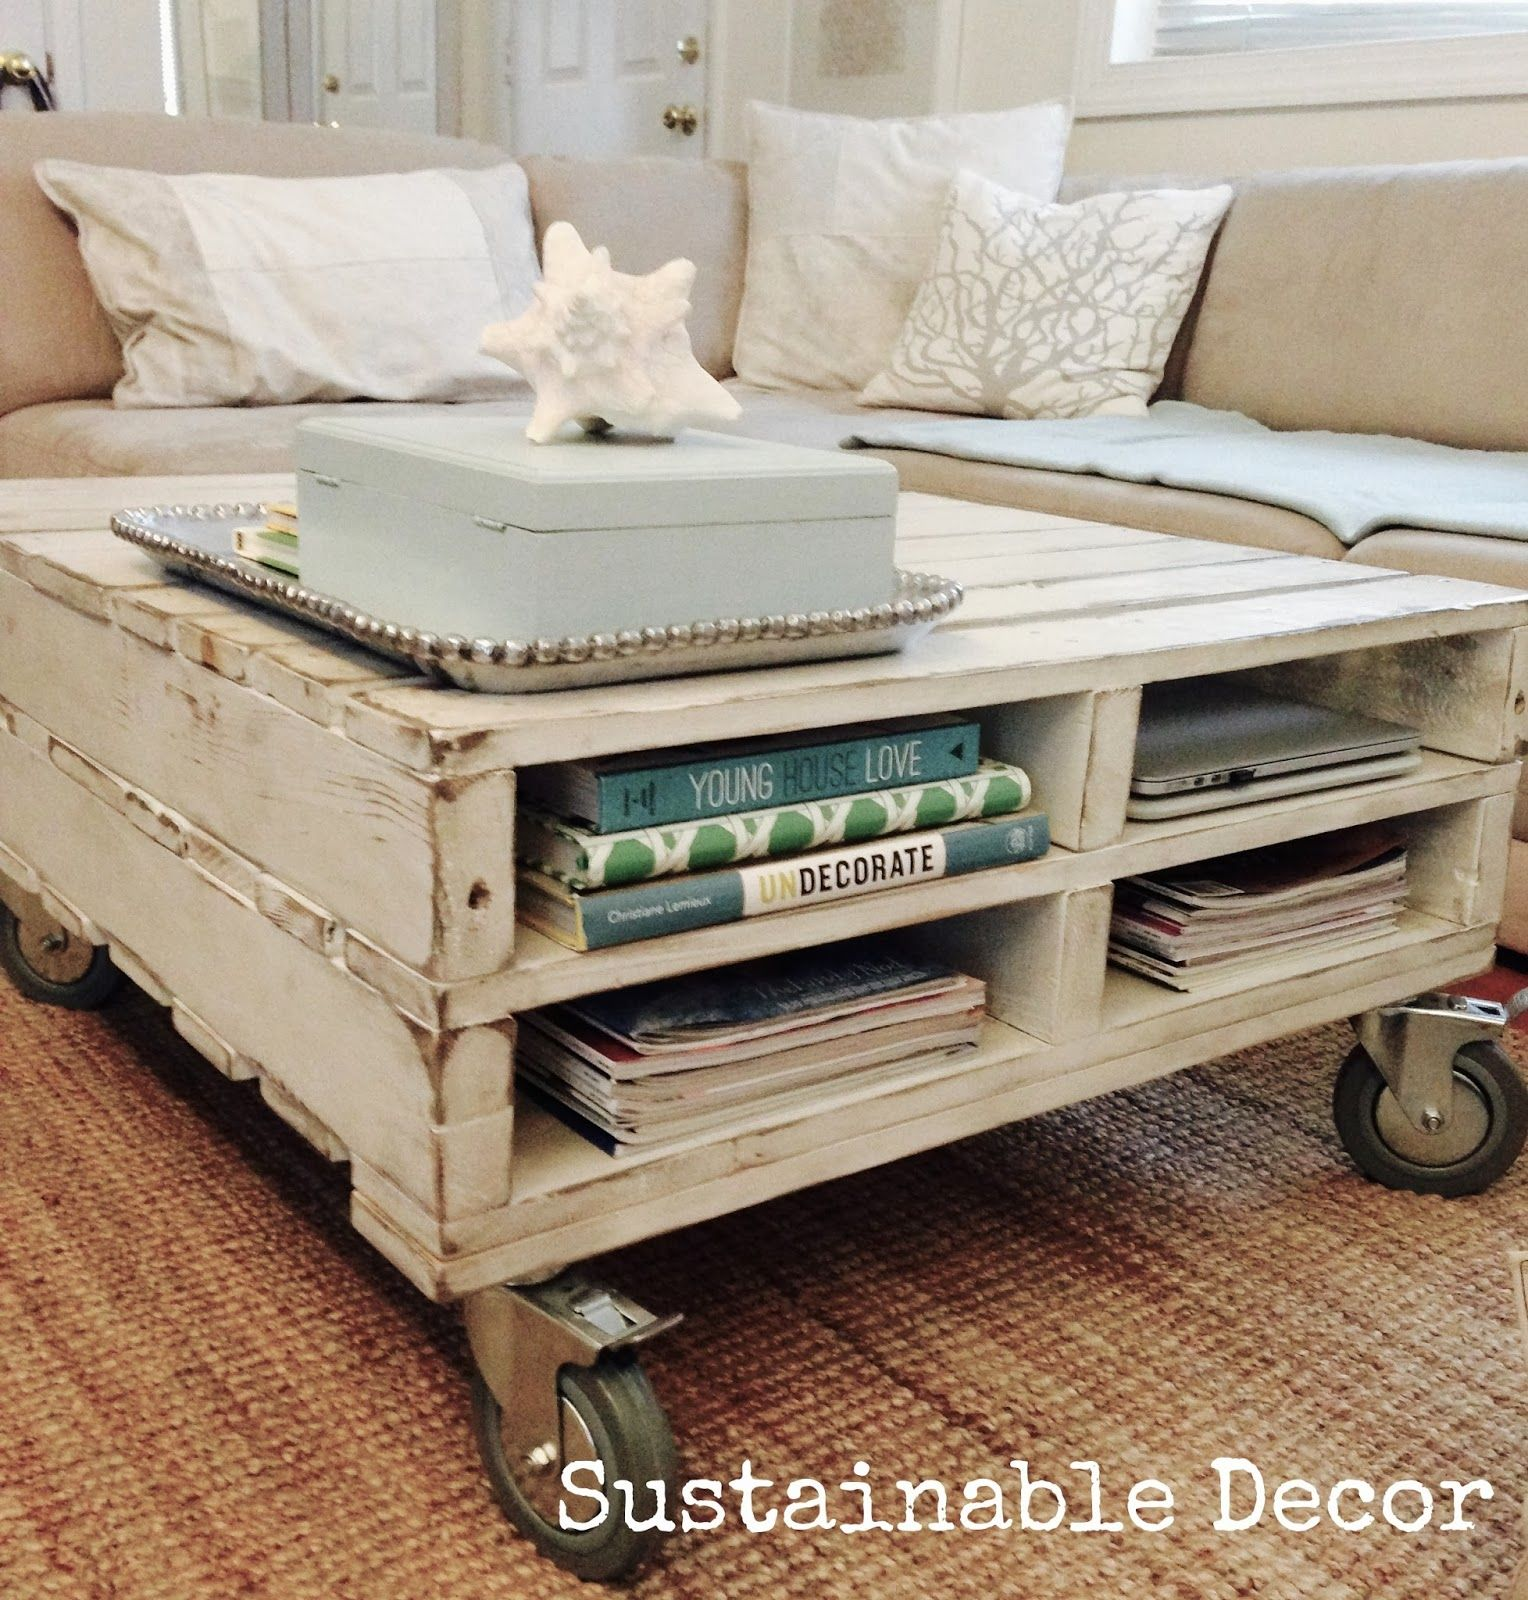 Upcycled Pallet Coffee Table Sustainable Decor Pallet Furniture